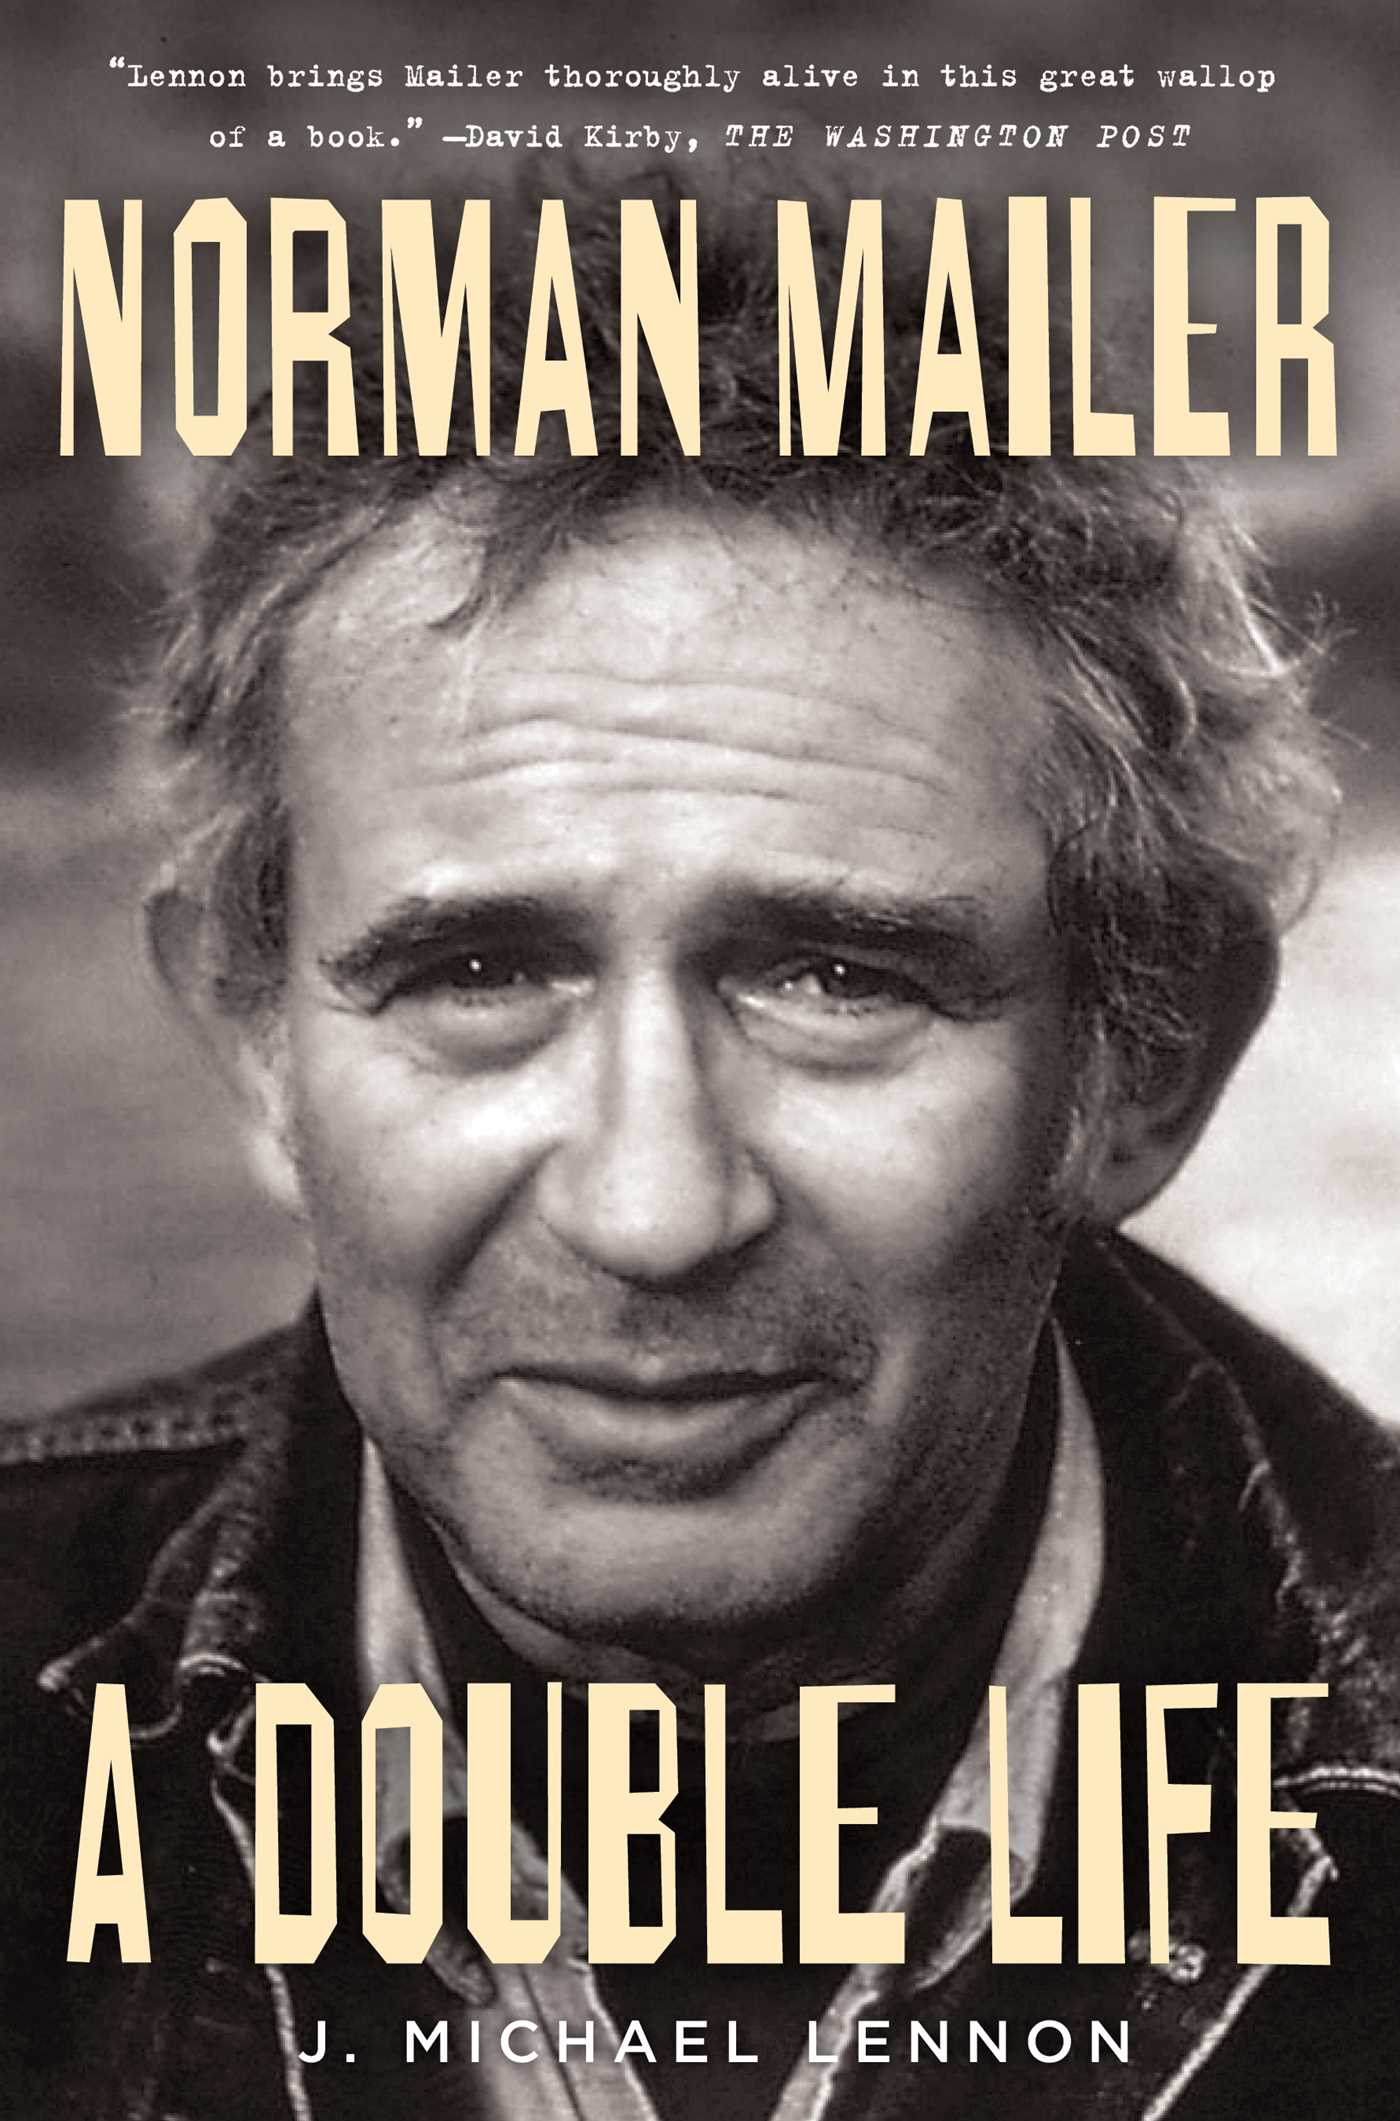 Norman mailer a double life 9781439150214 hr